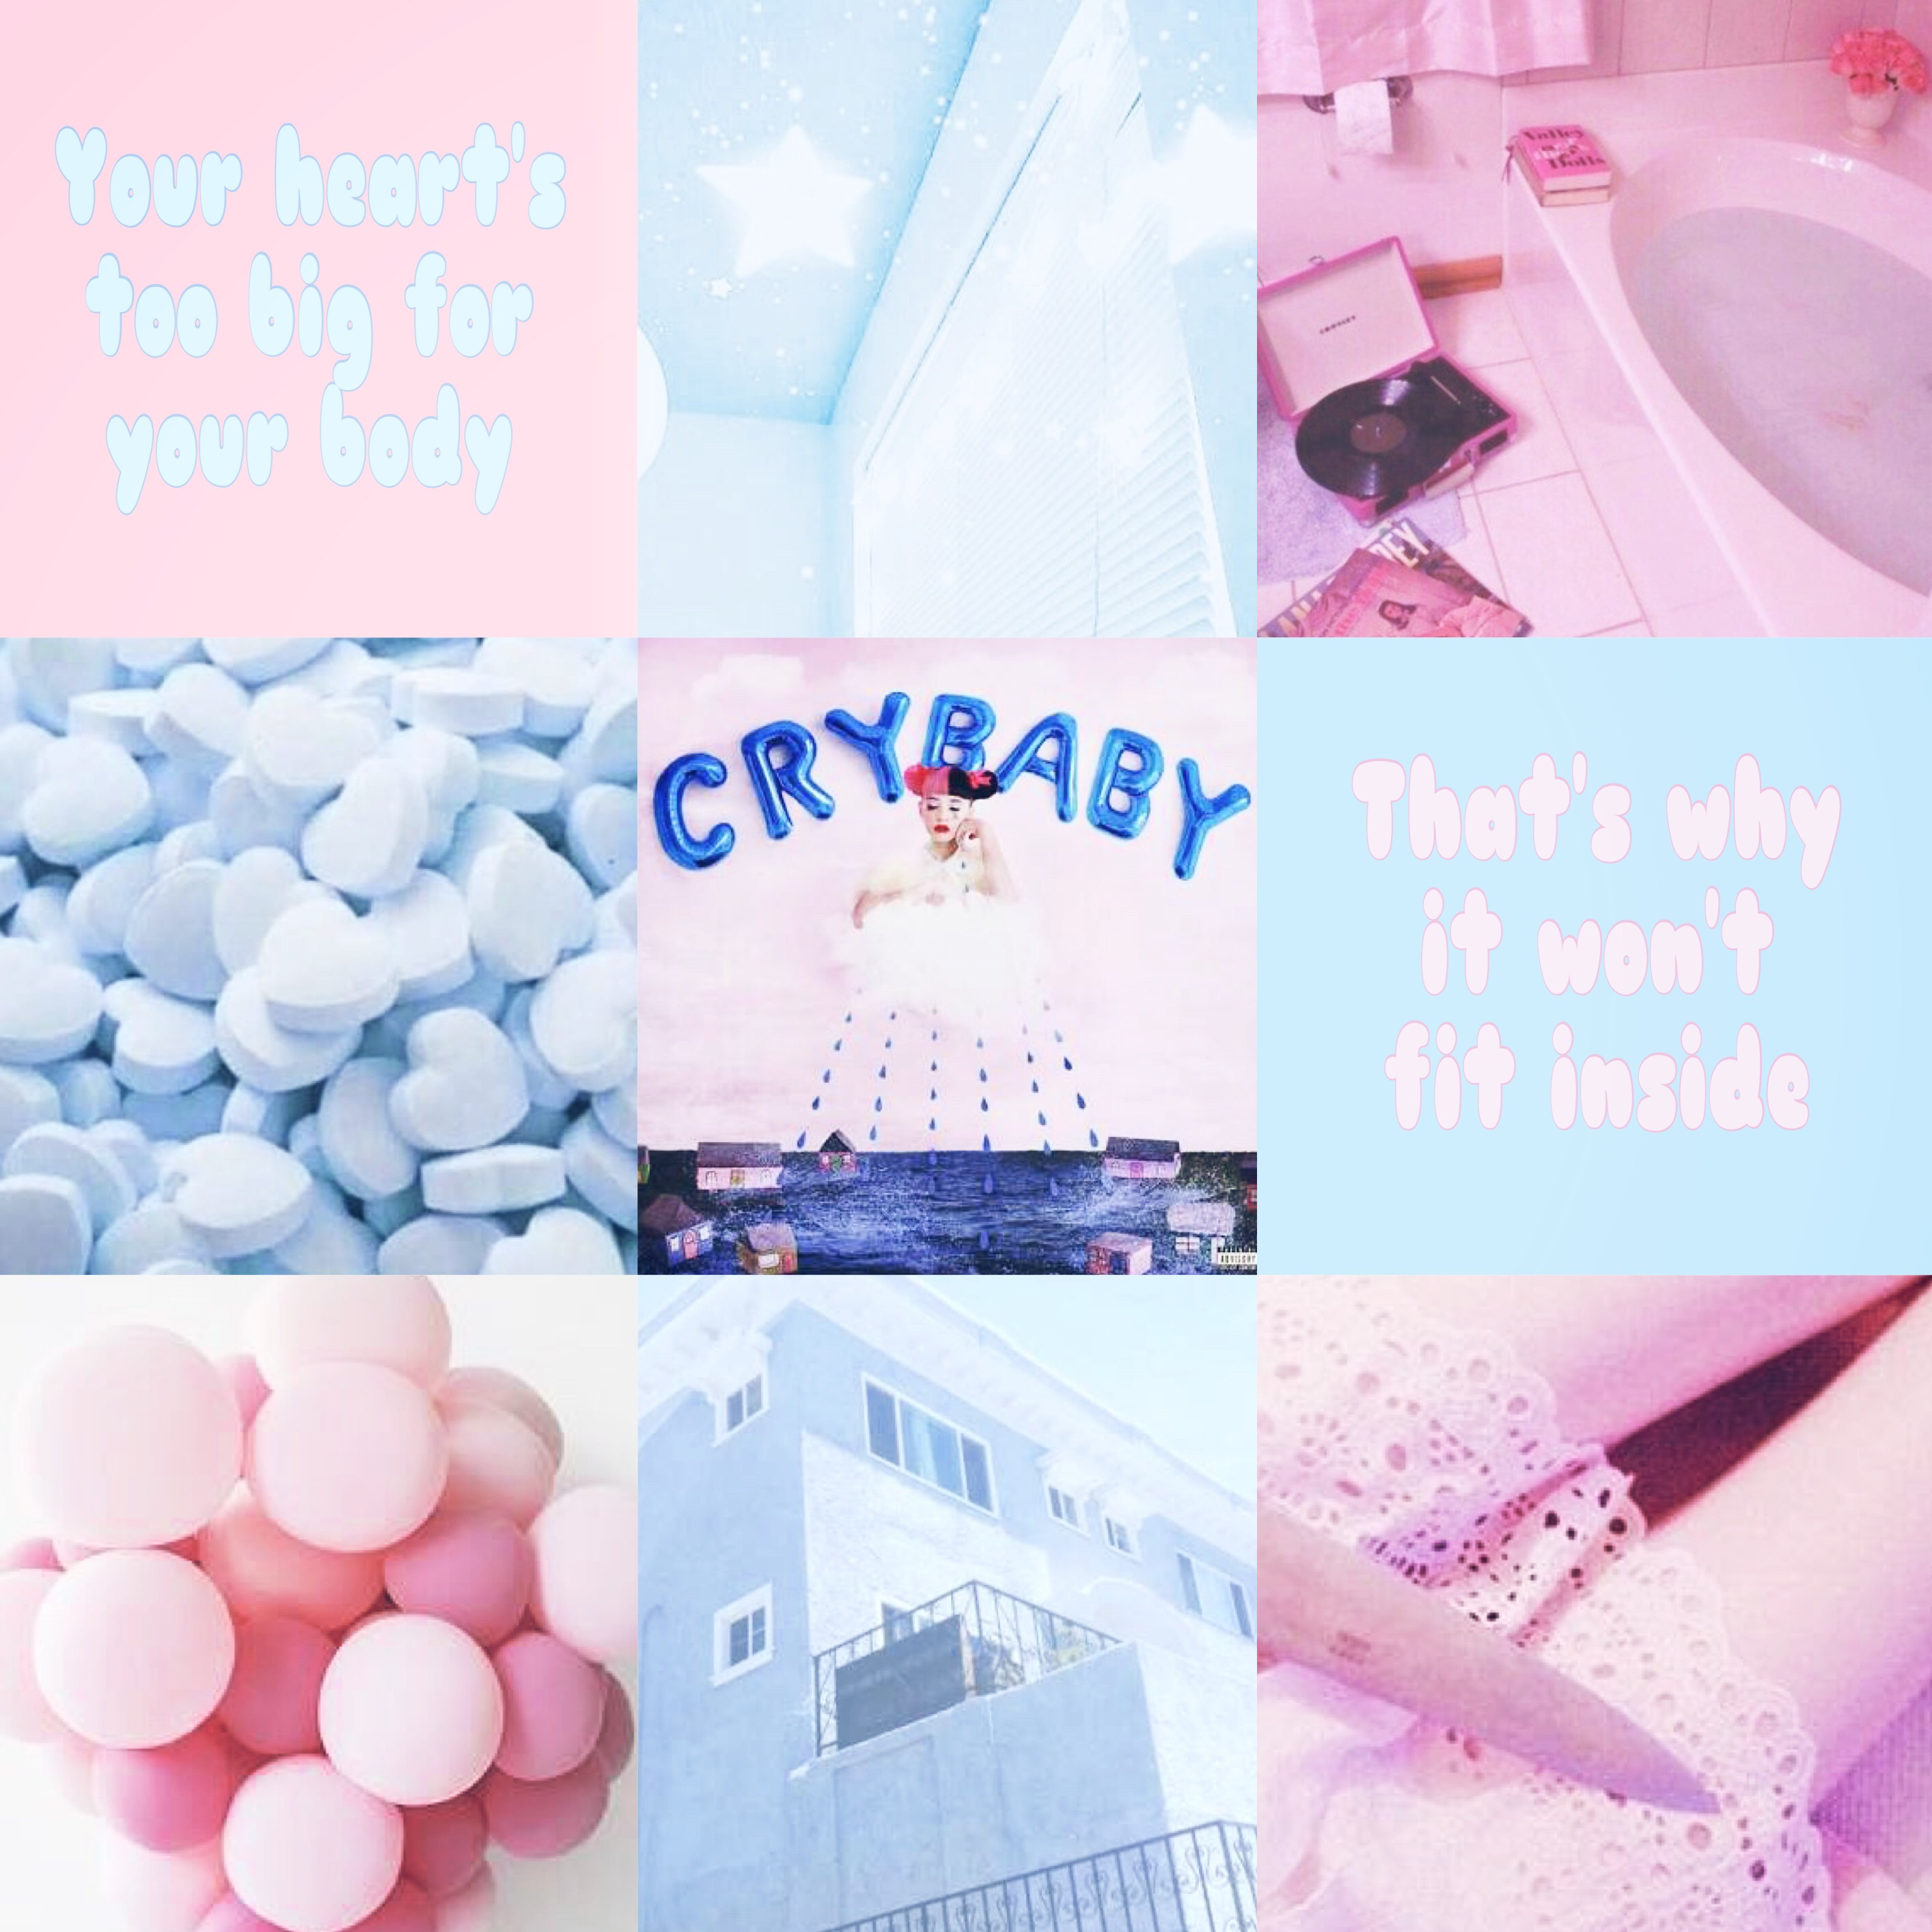 Crybaby Aesthetic Pink Blue Pastel Image By Hannah